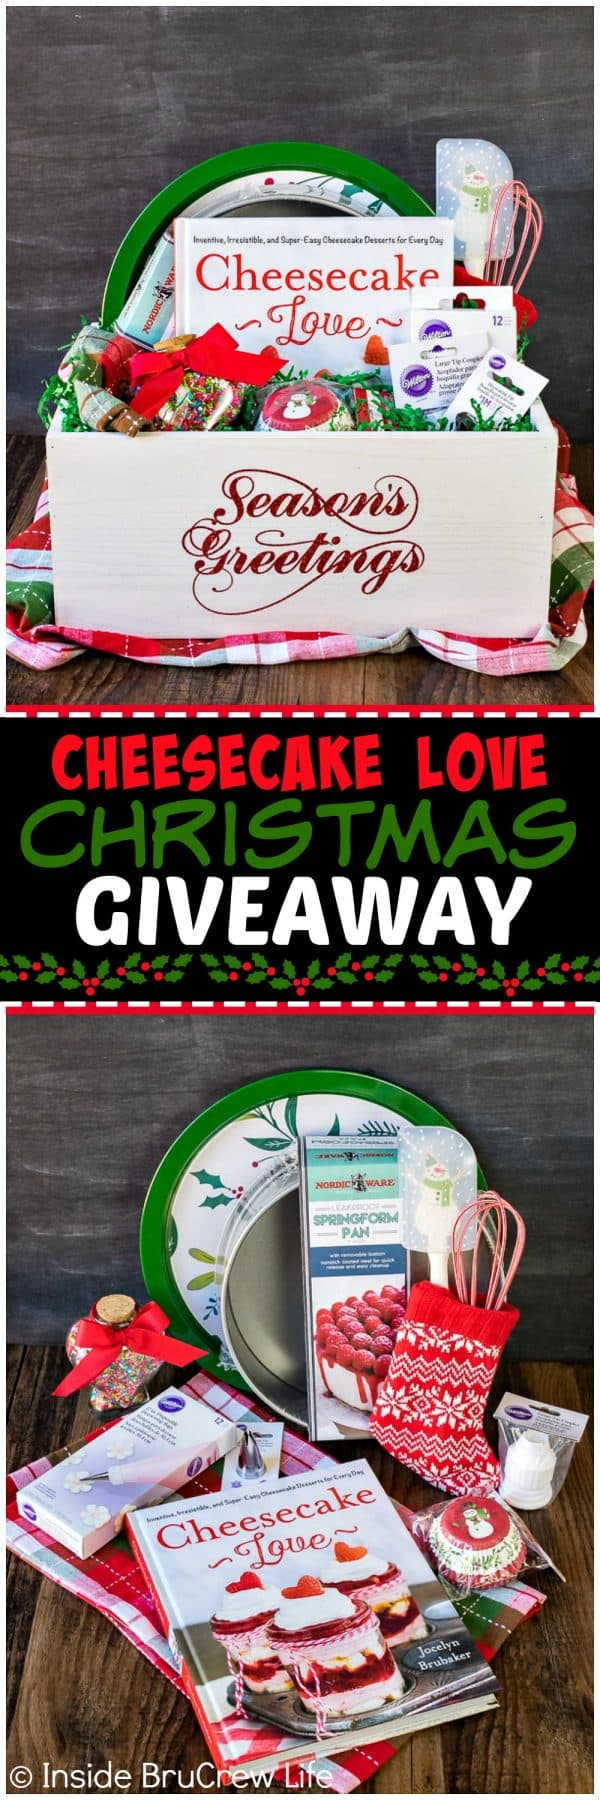 Cheesecake Love Christmas Giveaway - enter to win this box of cheesecake making supplies. Great gift box for the cheesecake lover in your life!